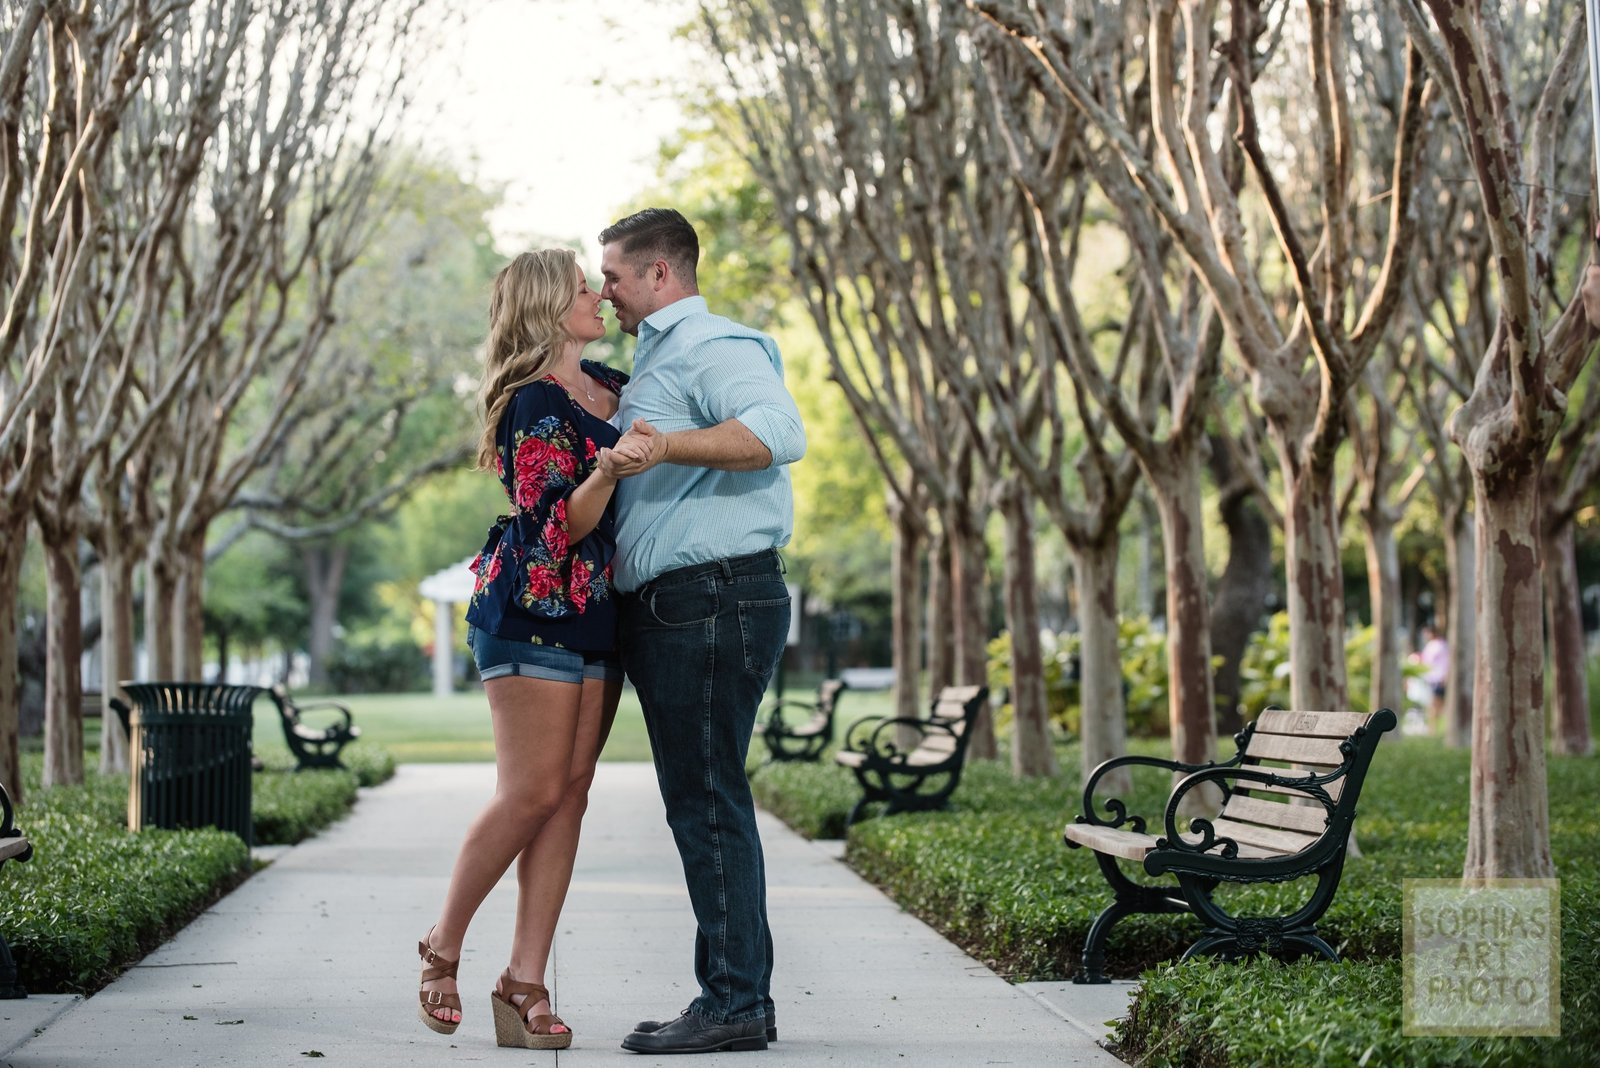 celebration-florida-engagement-katie-kenny-sophiasartphoto-0010